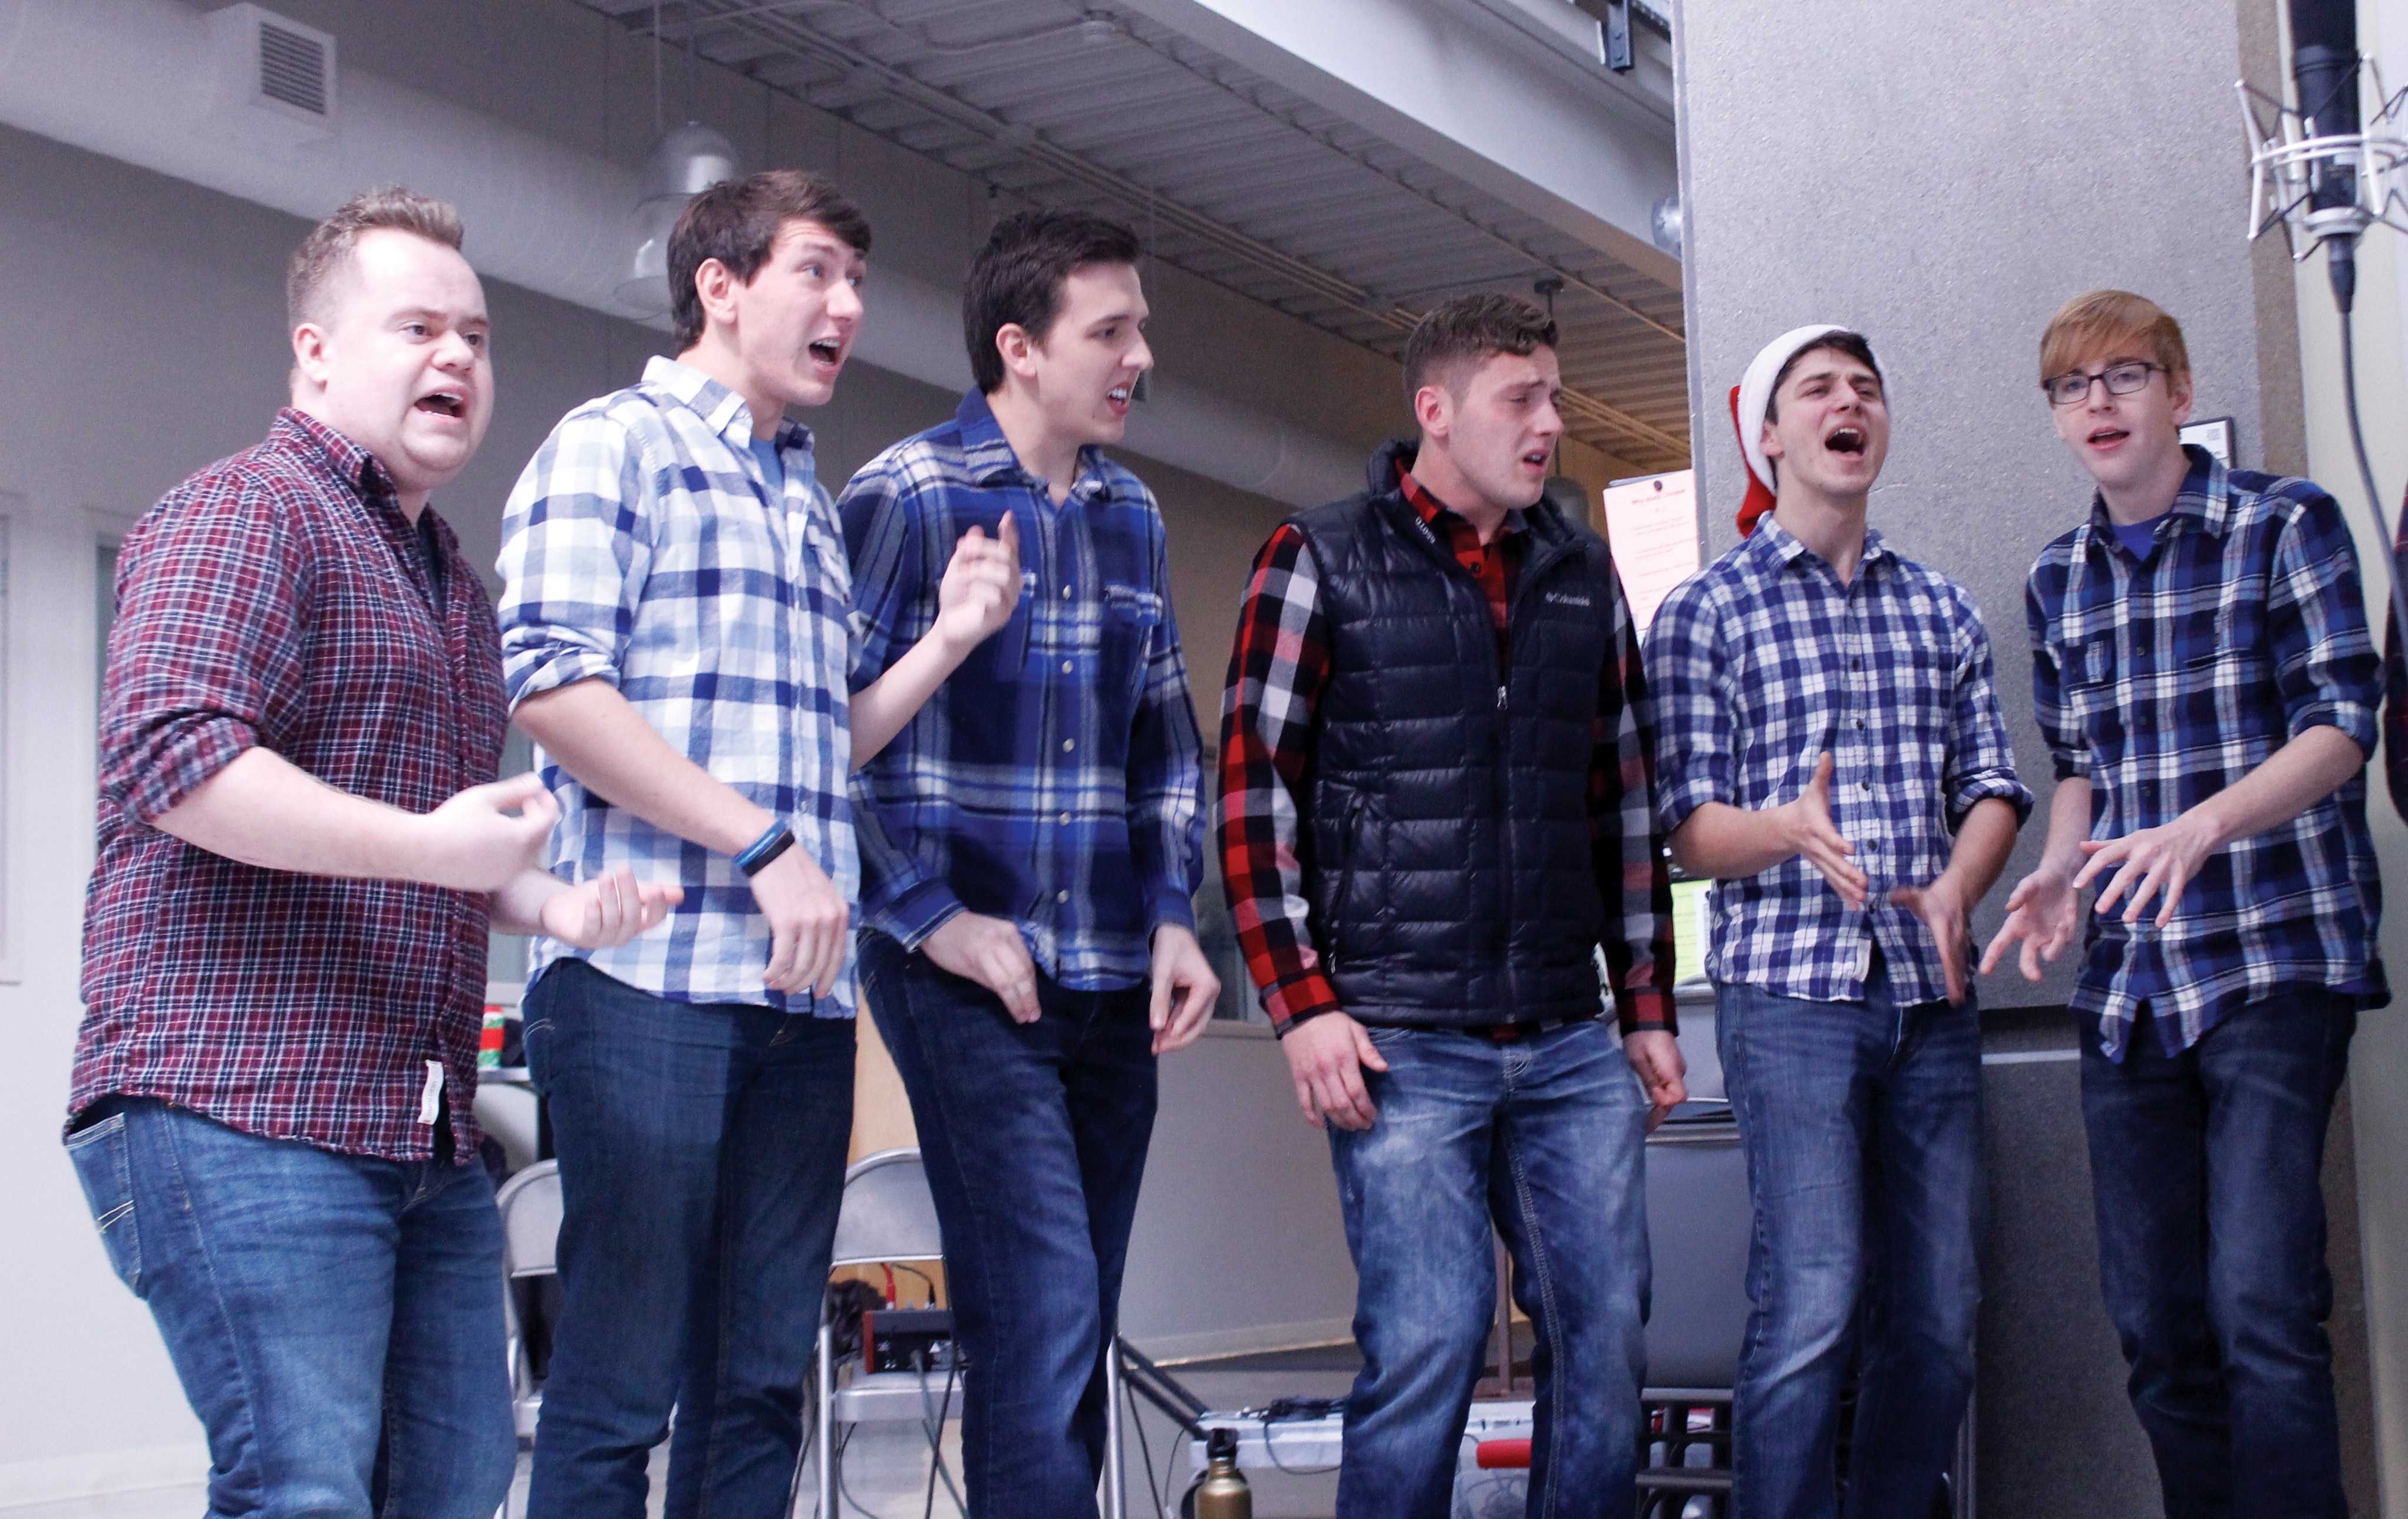 Andrew Botz ('18), Jacob Bungee ('18), Mason Montuoro ('18), Max Rooney ('17), Parker Fretheim ('19) and John Bendt ('20) from Bromatic Progression perform a group a capella piece.